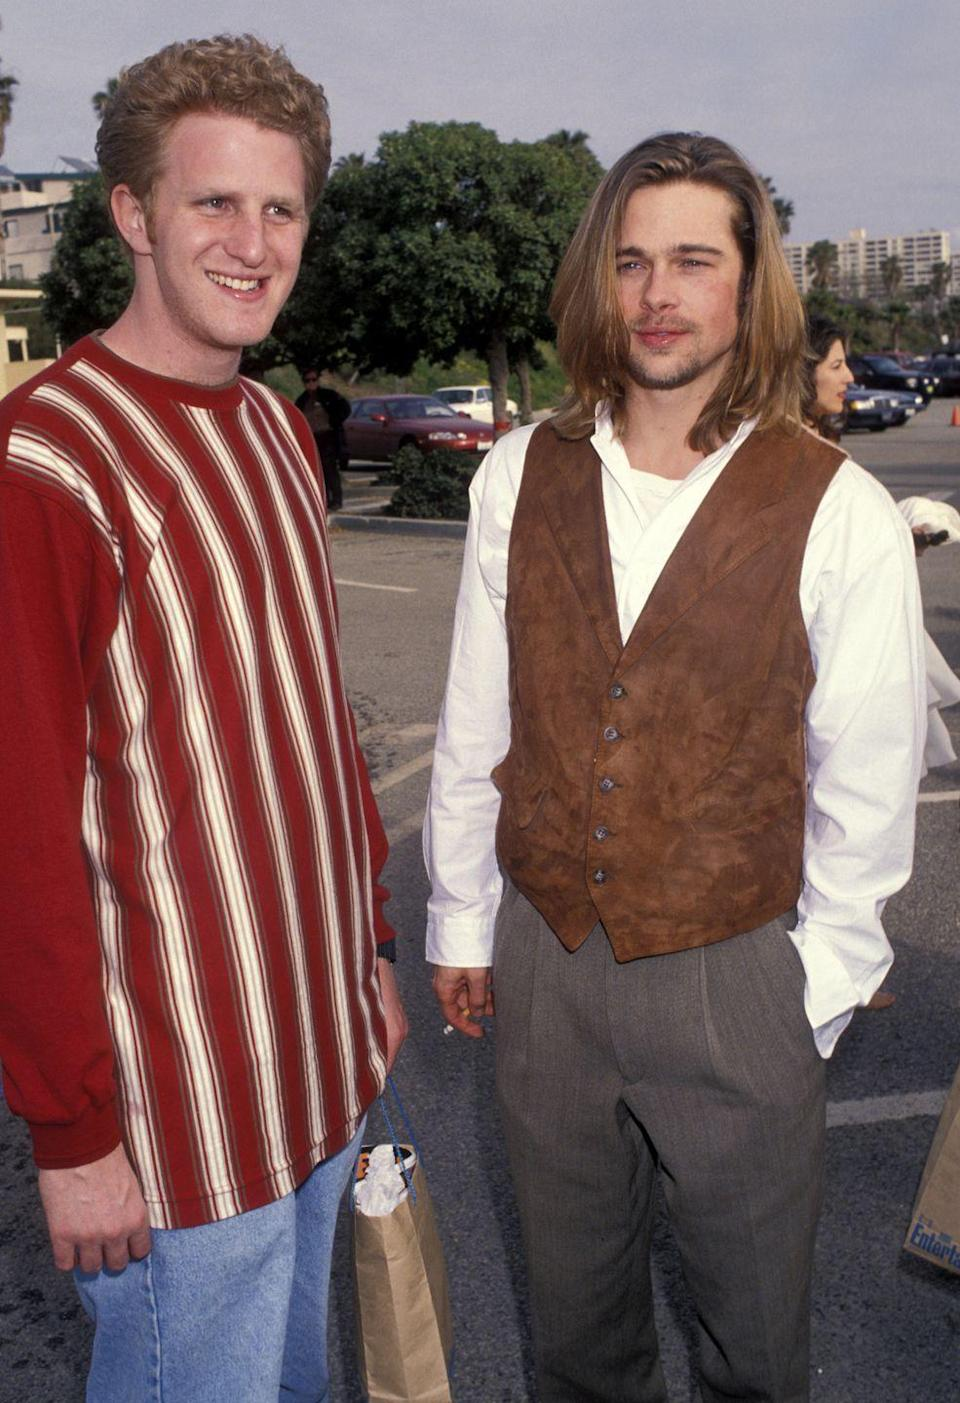 <p>Michael Rapaport poses with Pitt at the Independent Spirit Awards. The comedian and Pitt were part of the ensemble cast for Quentin Tarantino and Tony Scott's 1993 hit<em> True Romance</em>.</p>